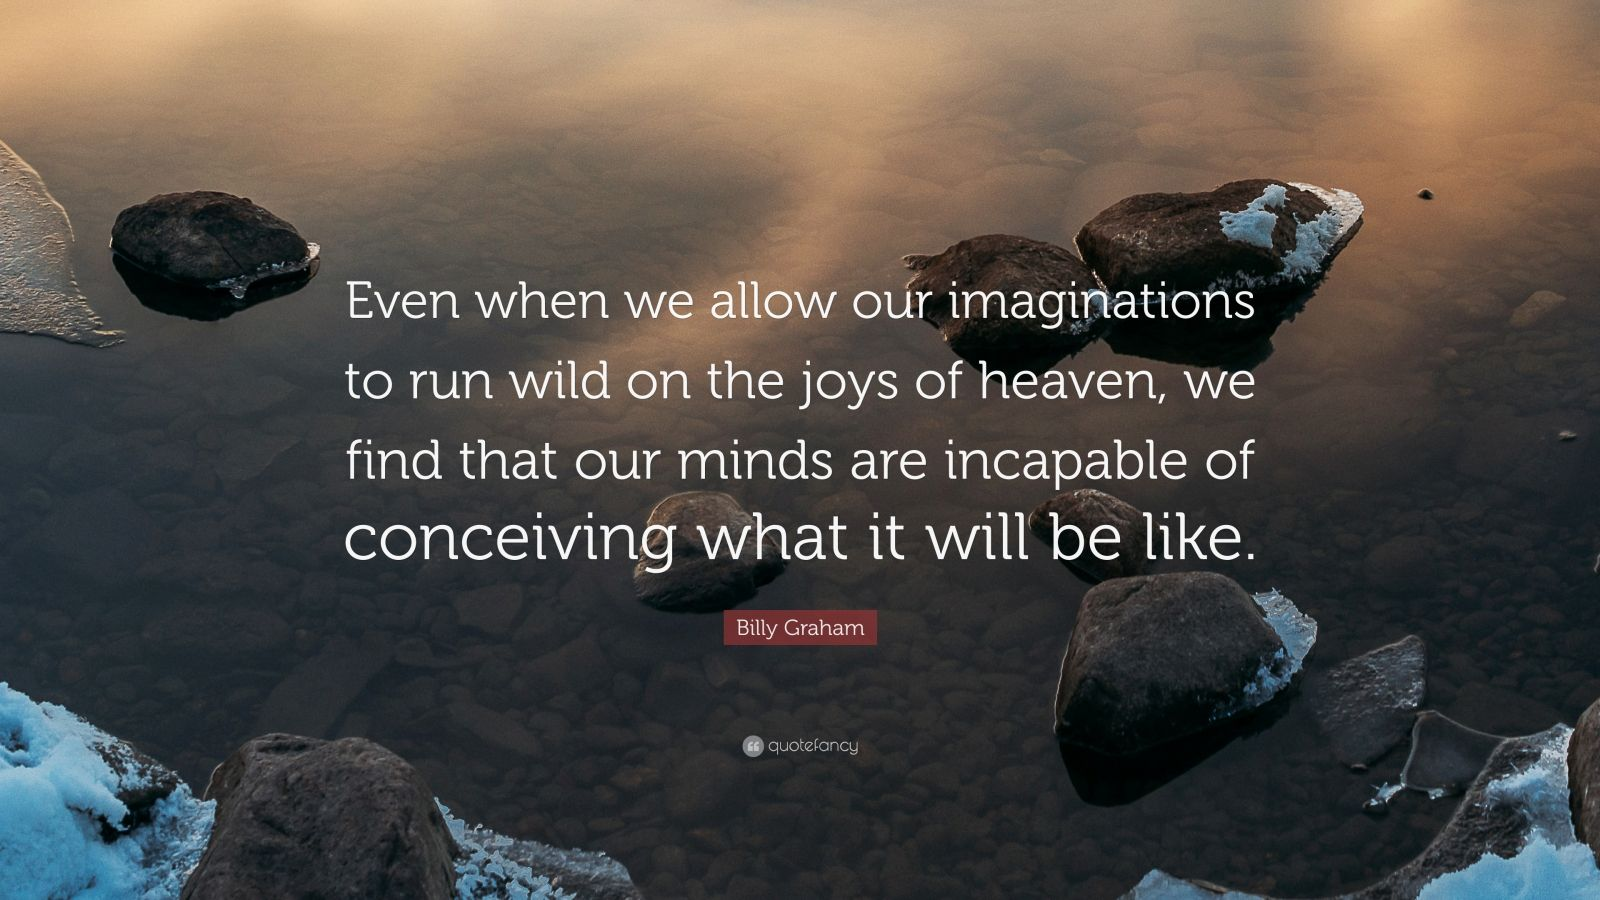 """Billy Graham Quote: """"Even when we allow our imaginations to run wild on the joys of heaven, we find that our minds are incapable of conceiving what it will be like."""""""